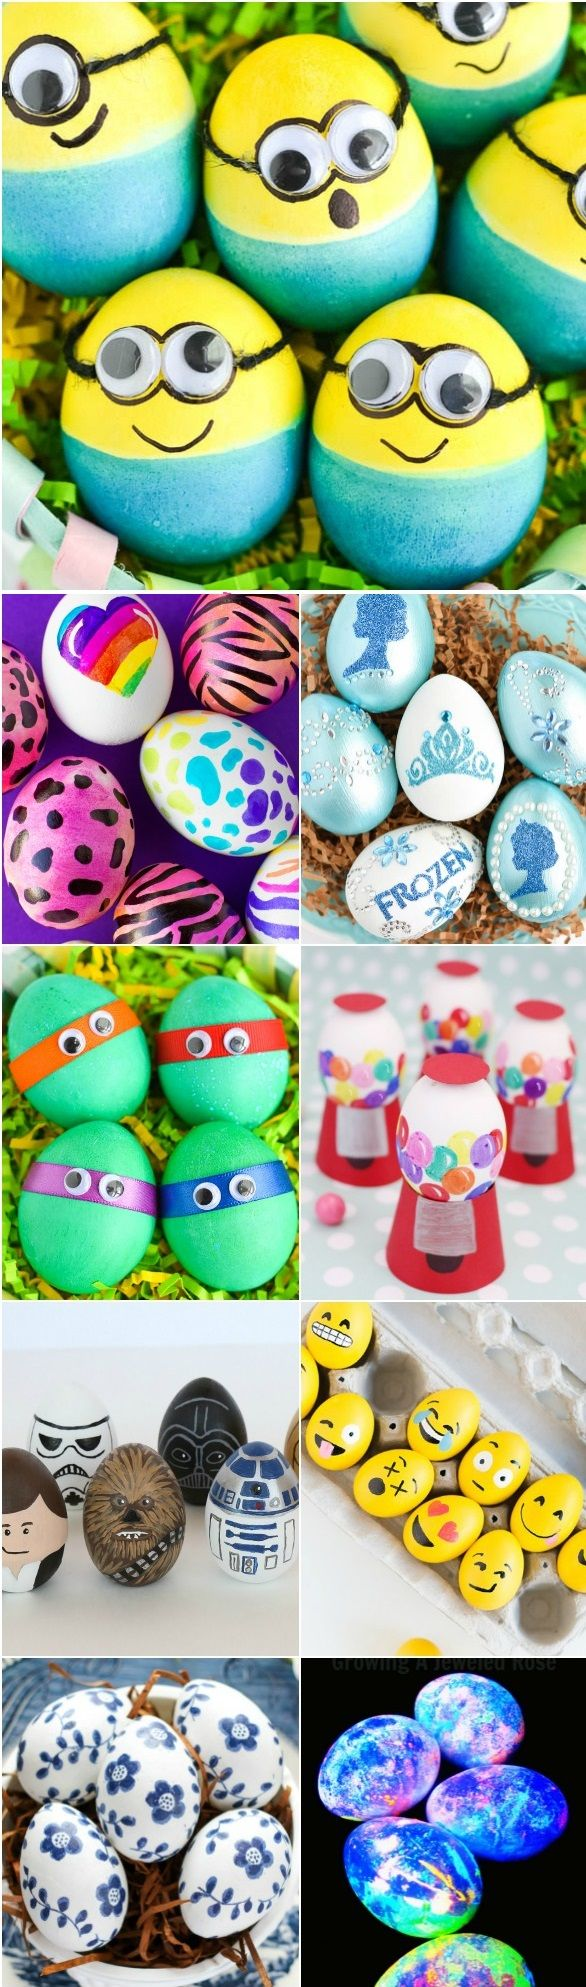 20+ Easter Egg Decorating Ideas